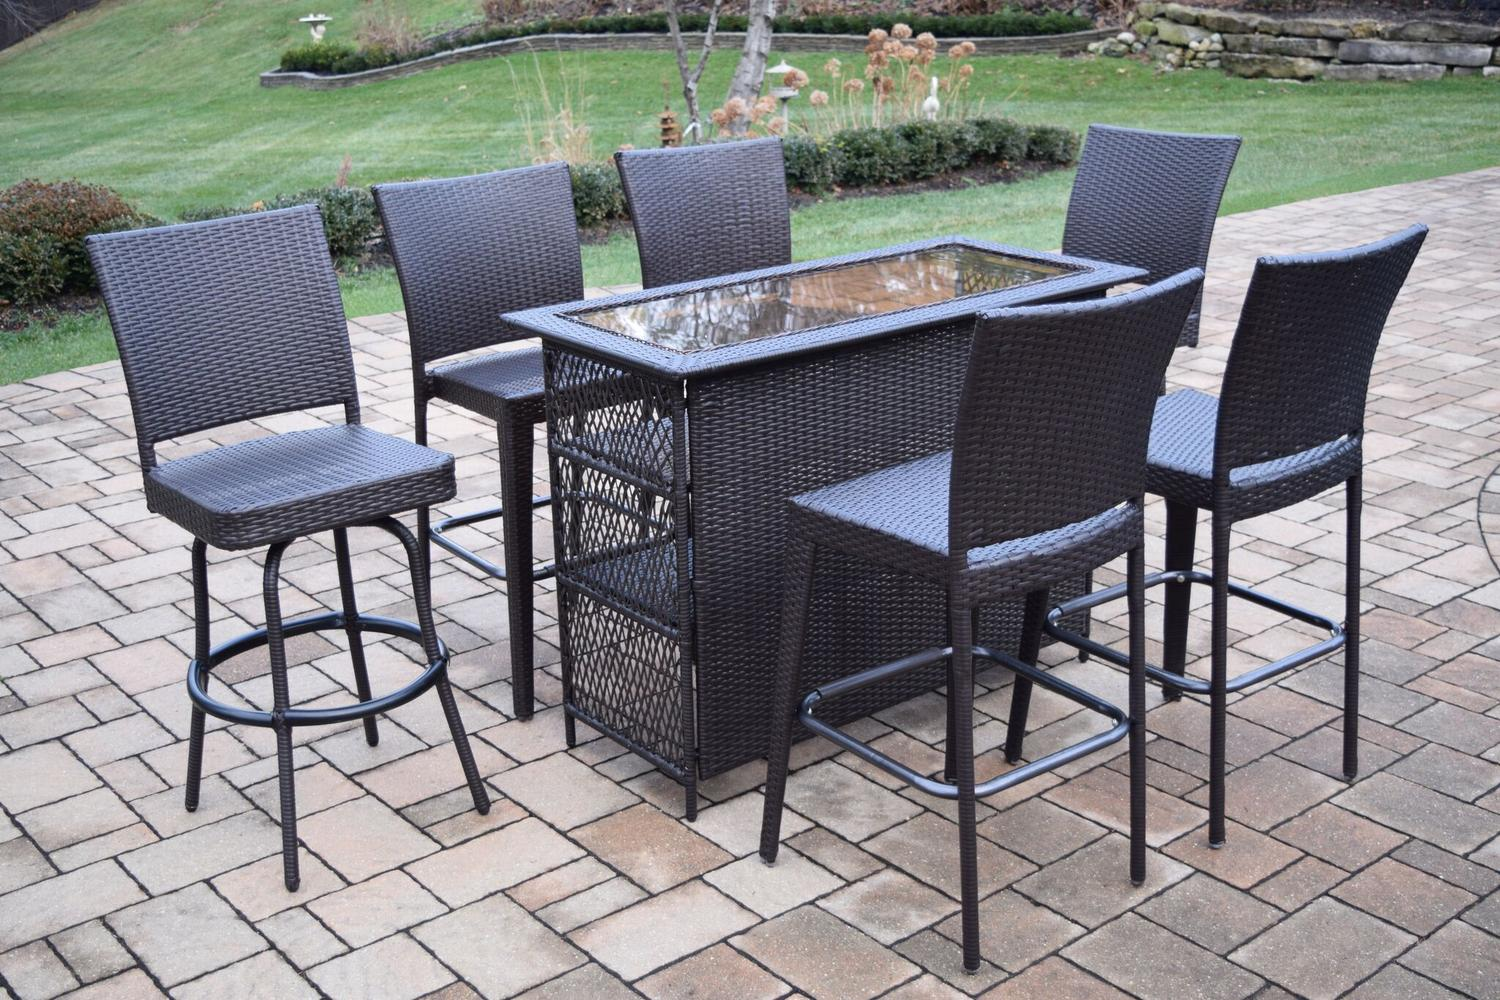 Charmant 7 Piece Coffee Brown Elite All Weather Resin Wicker Outdoor Patio Bar Set